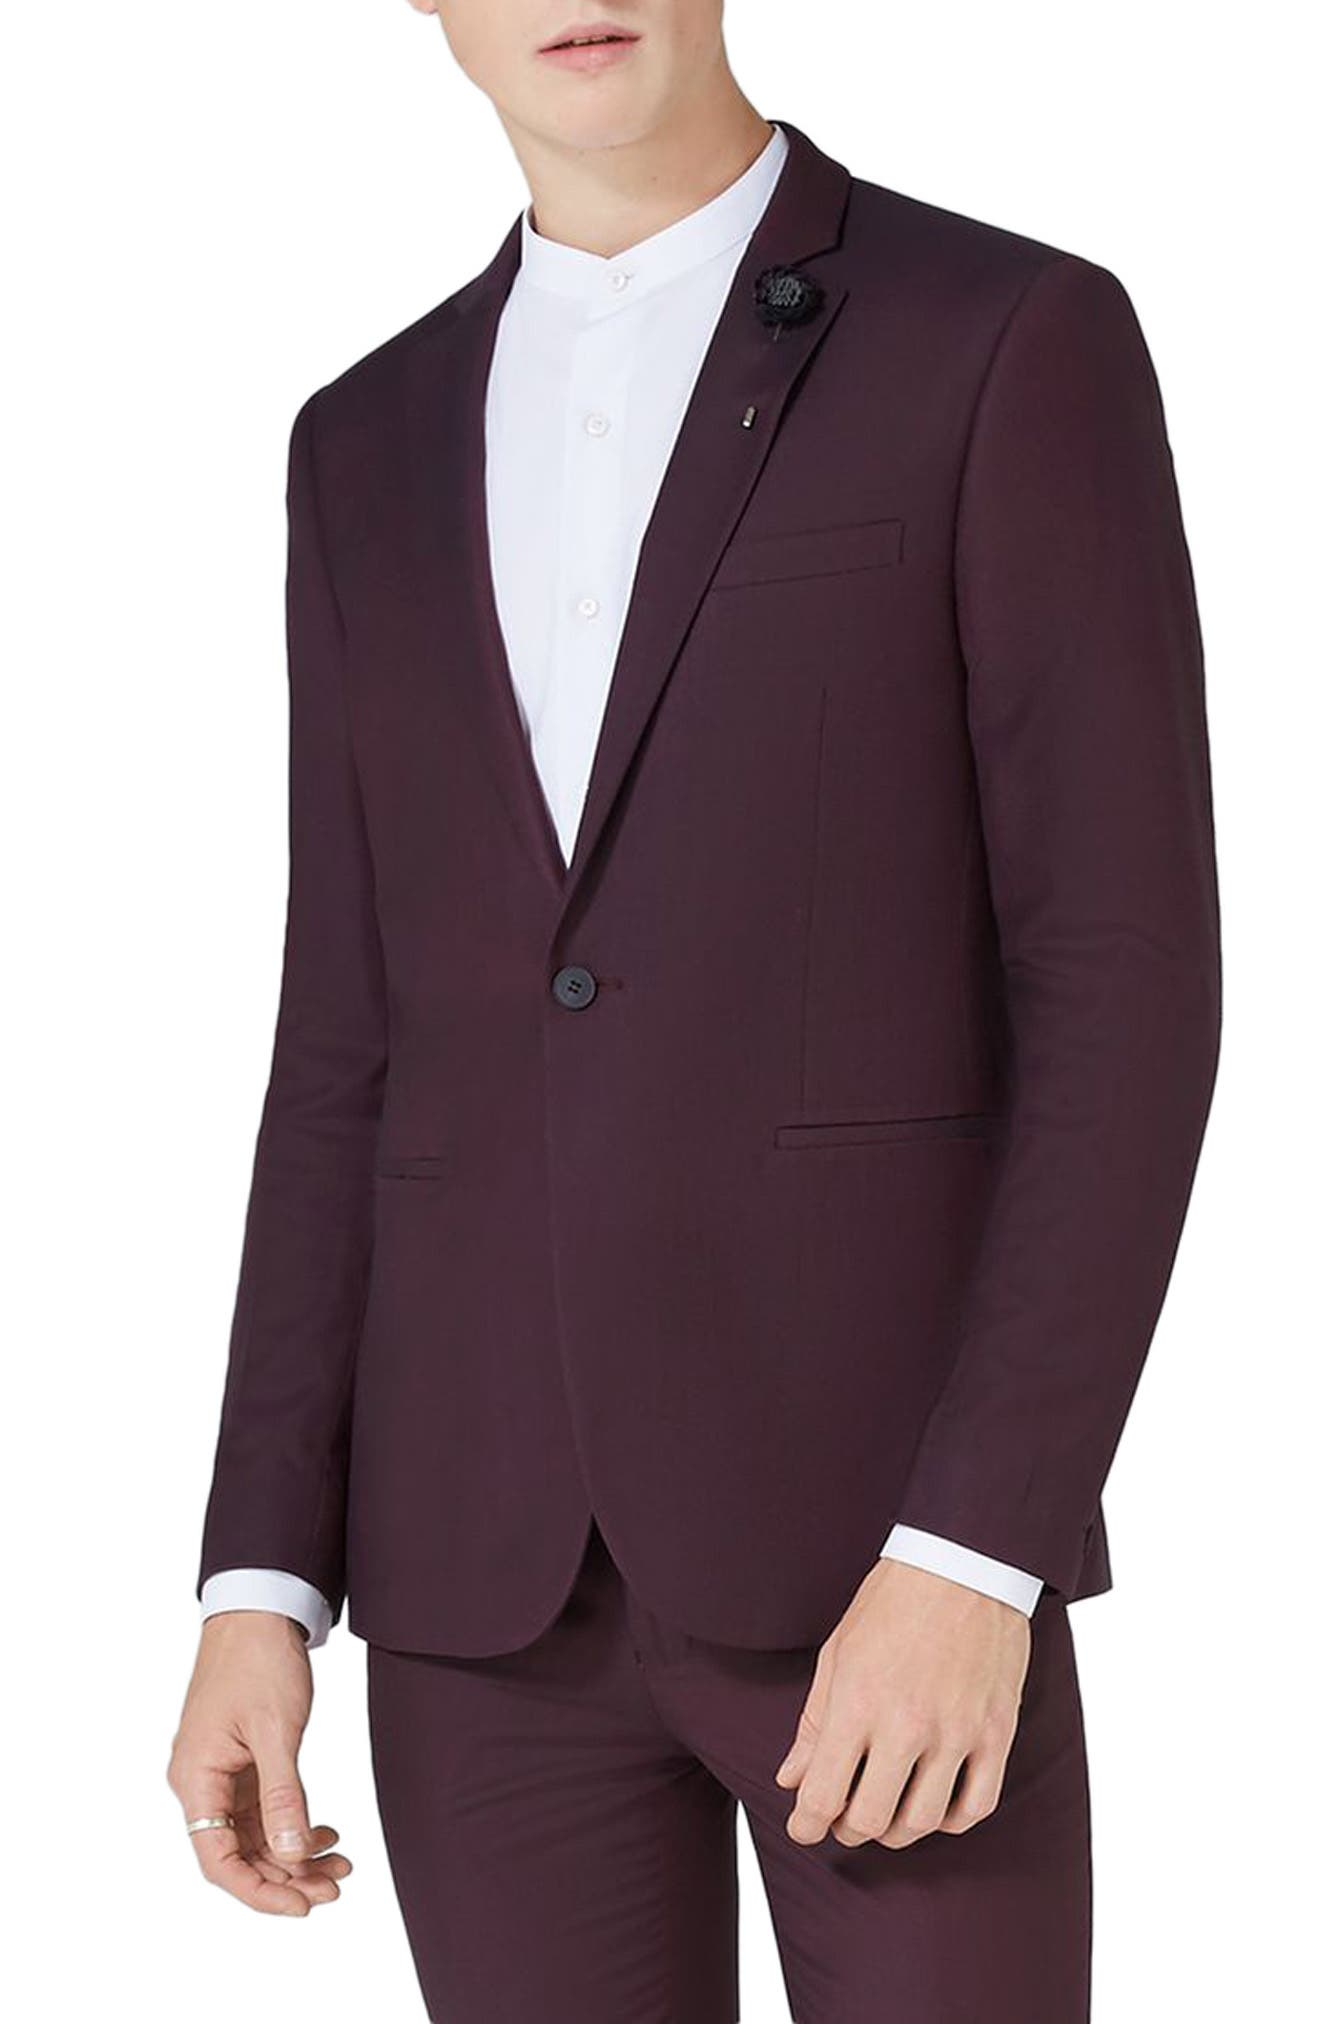 Skinny Fit Plum One-Button Suit Jacket,                             Main thumbnail 1, color,                             Plum